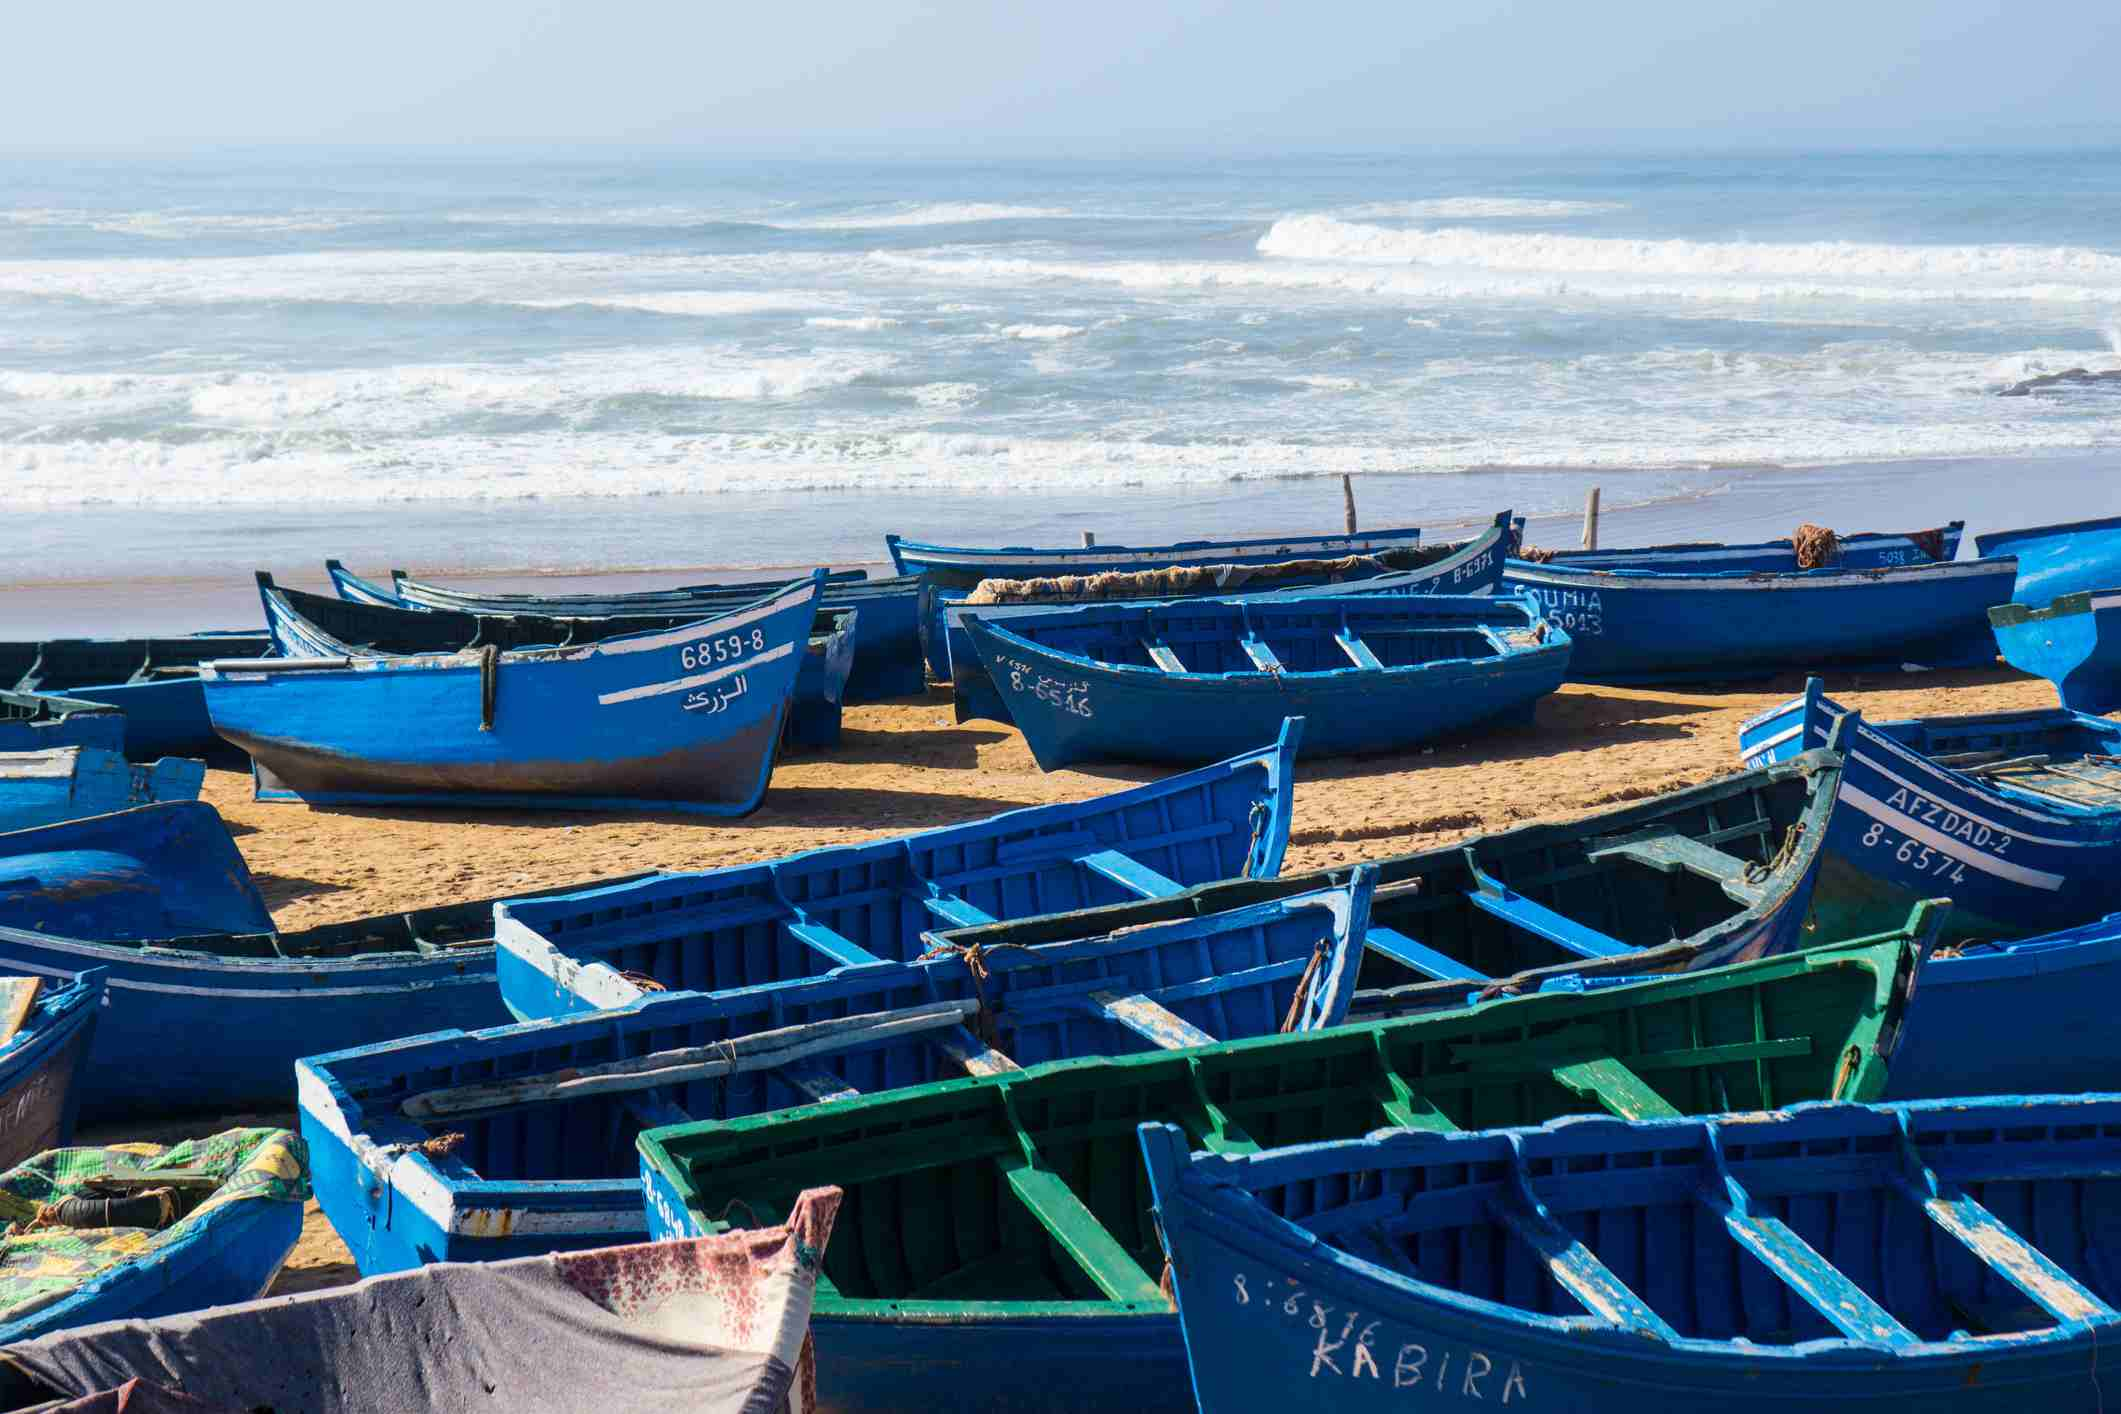 Traditional boats on a Moroccan beach